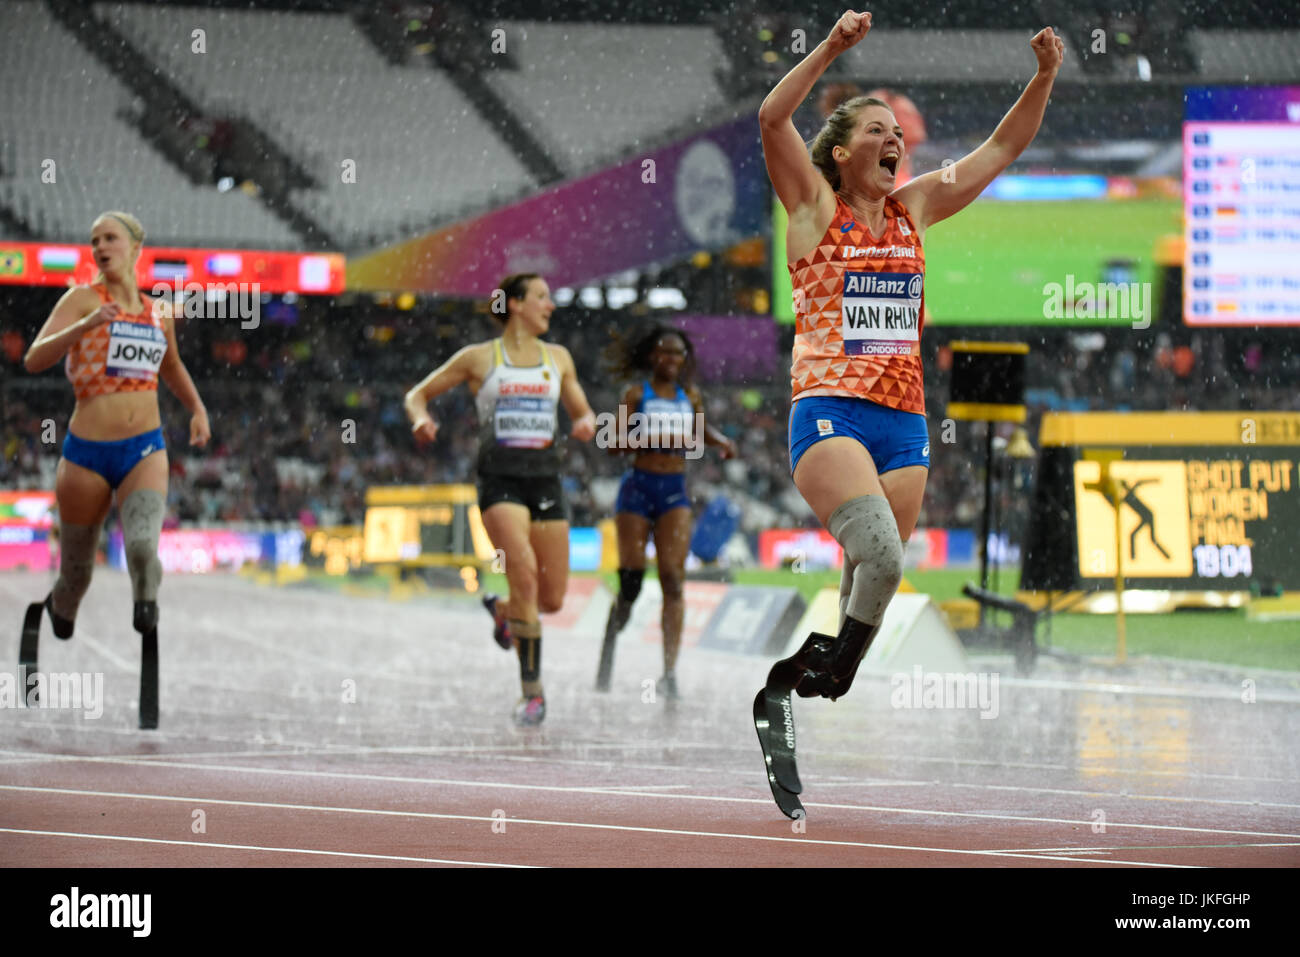 the-final-session-of-the-world-para-athletics-championships-in-the-JKFGHP.jpg